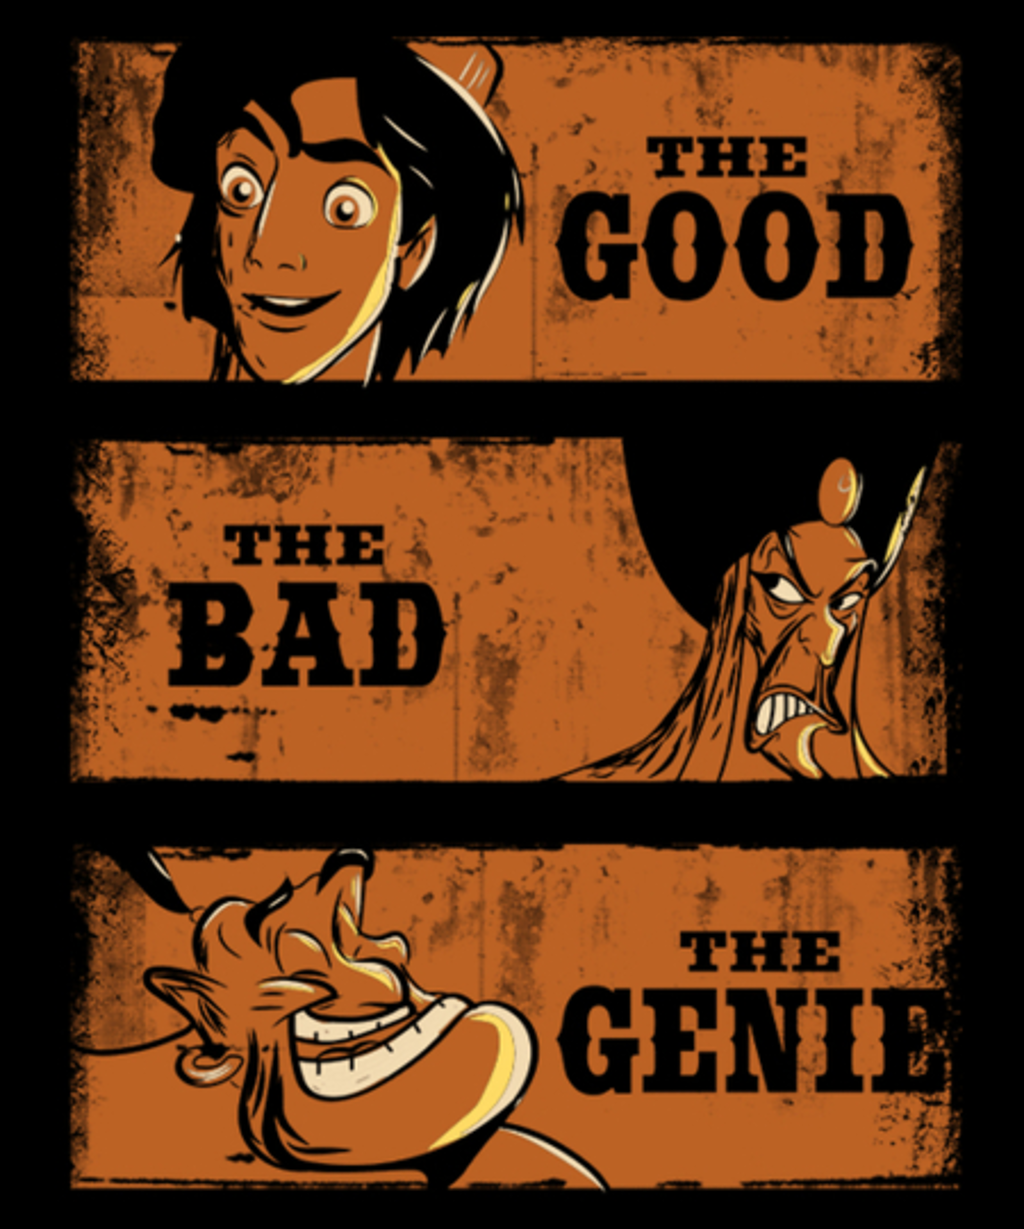 Qwertee: The Good,the Bad,The Genie